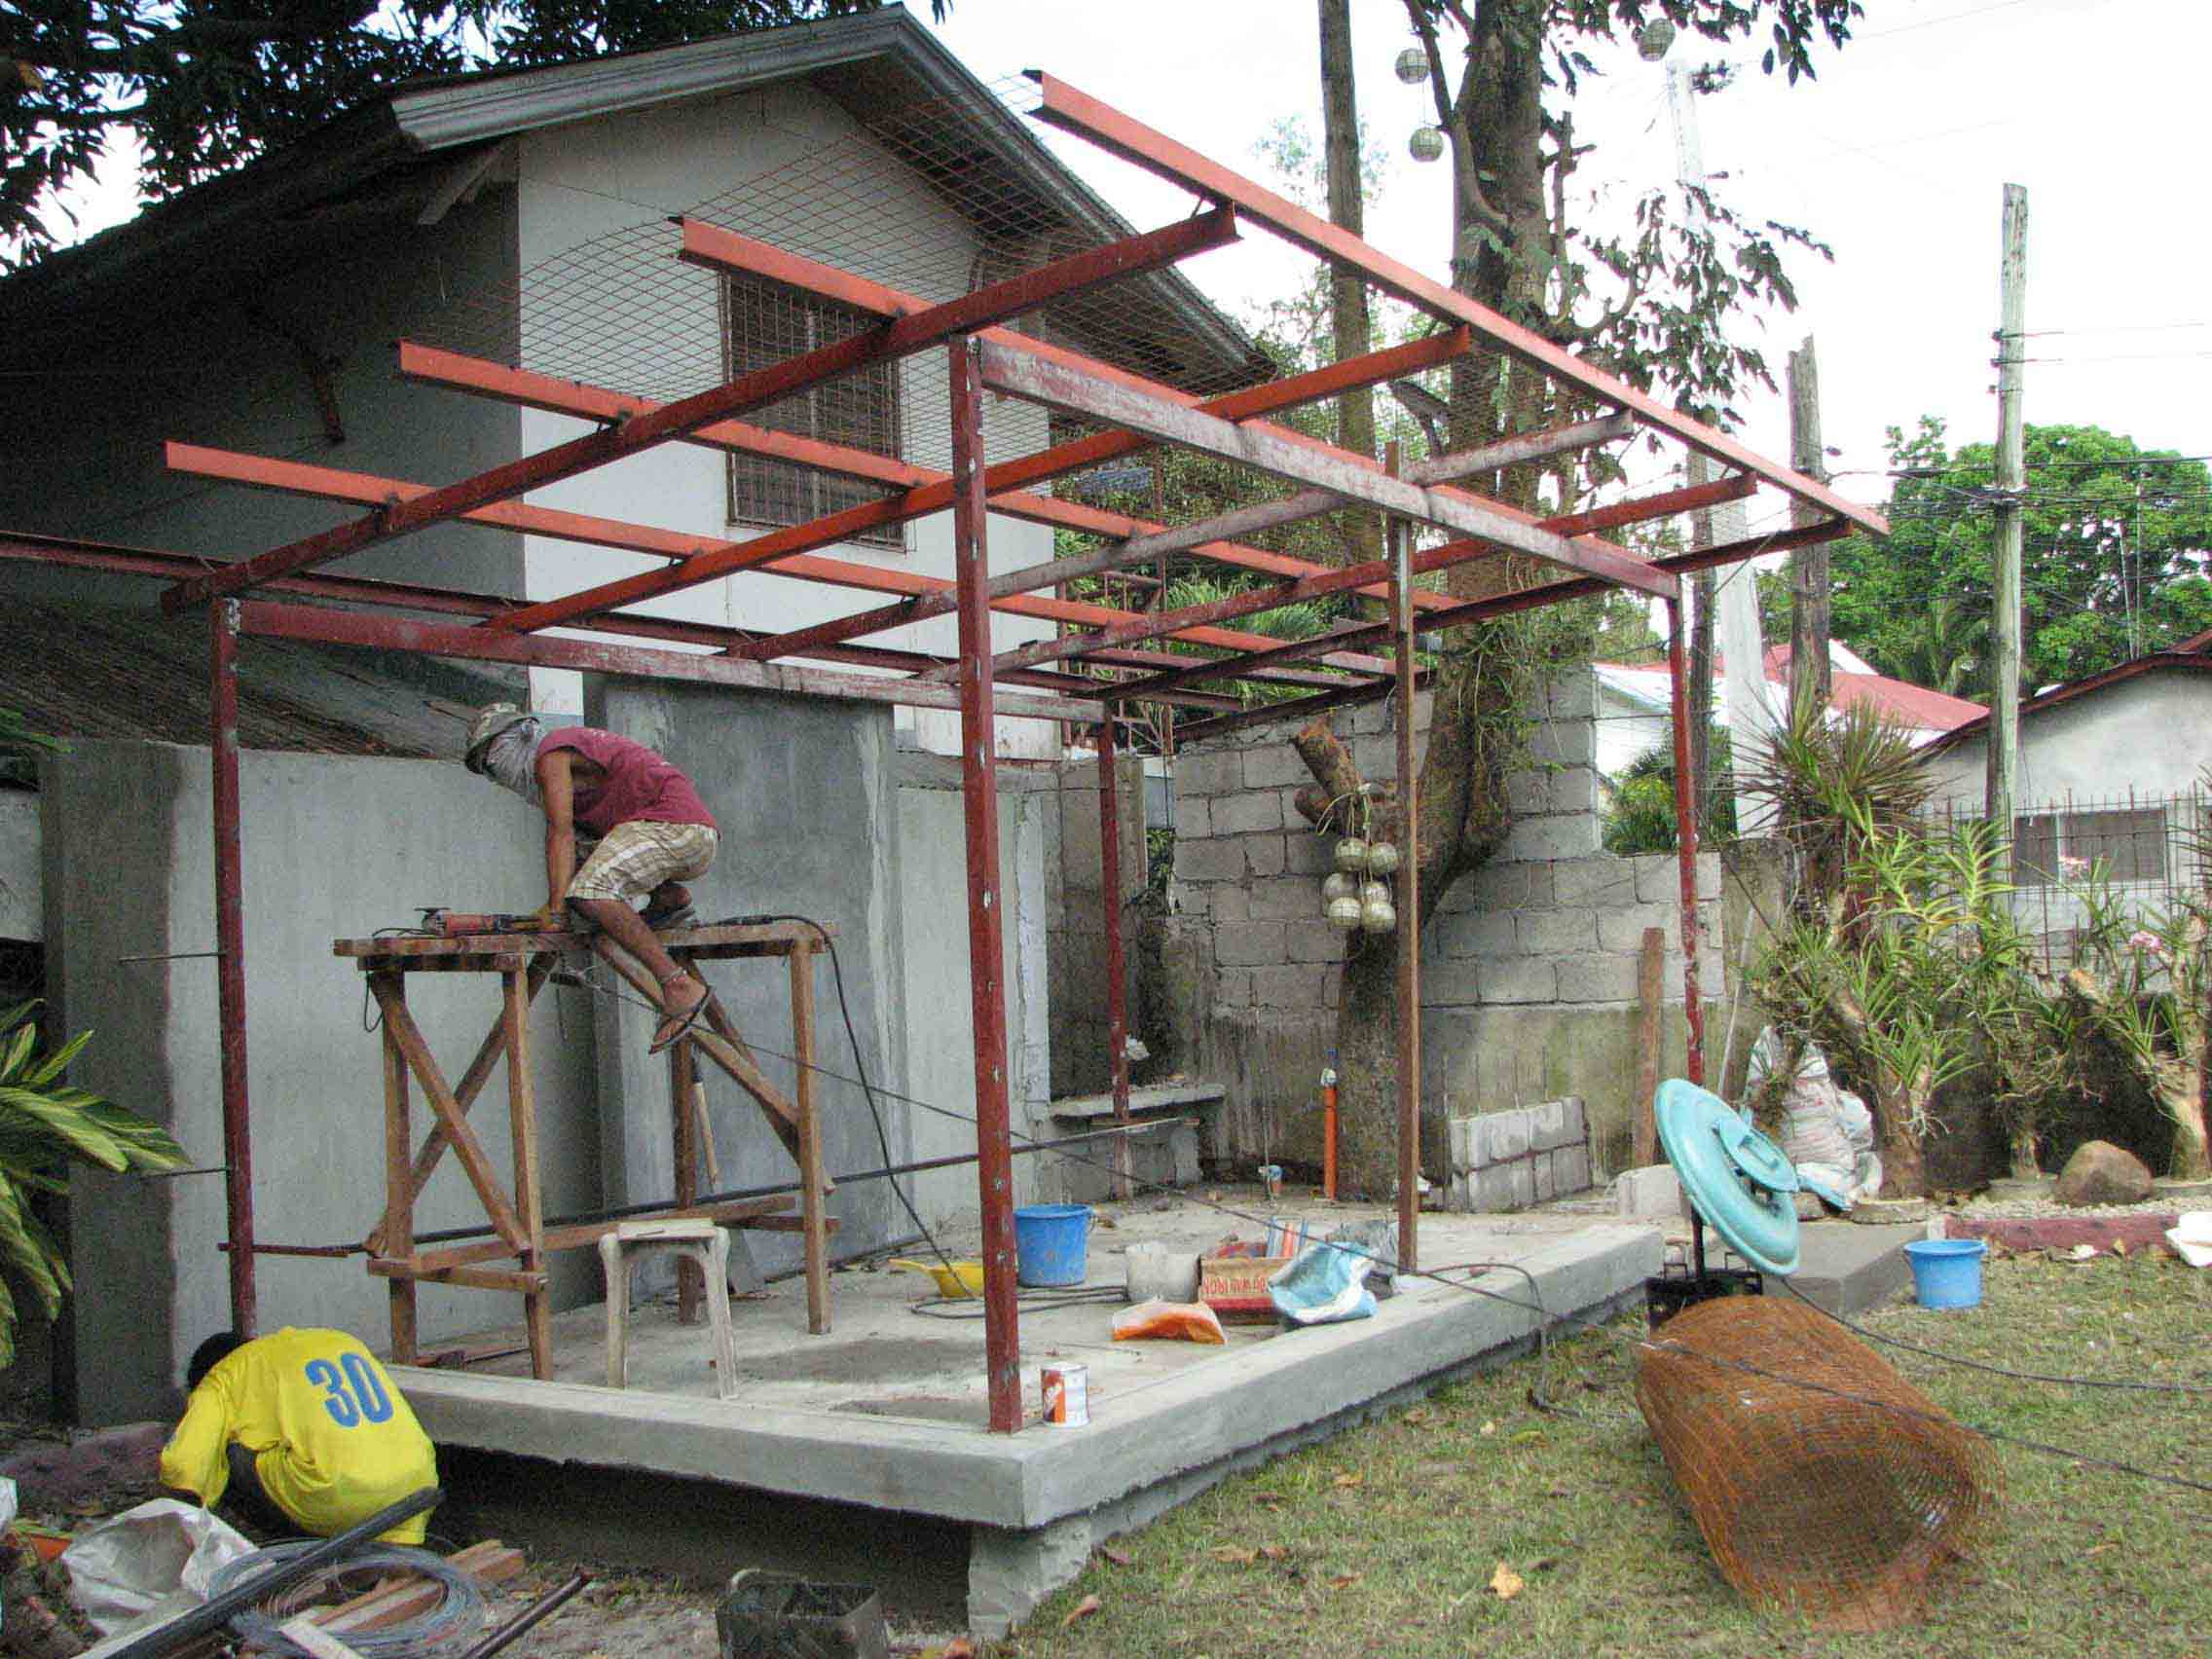 Bacolod Modern House Extension Roof Framing Archian Designs Construction In Iloilo Bacolod Cebu Davao The Philippines